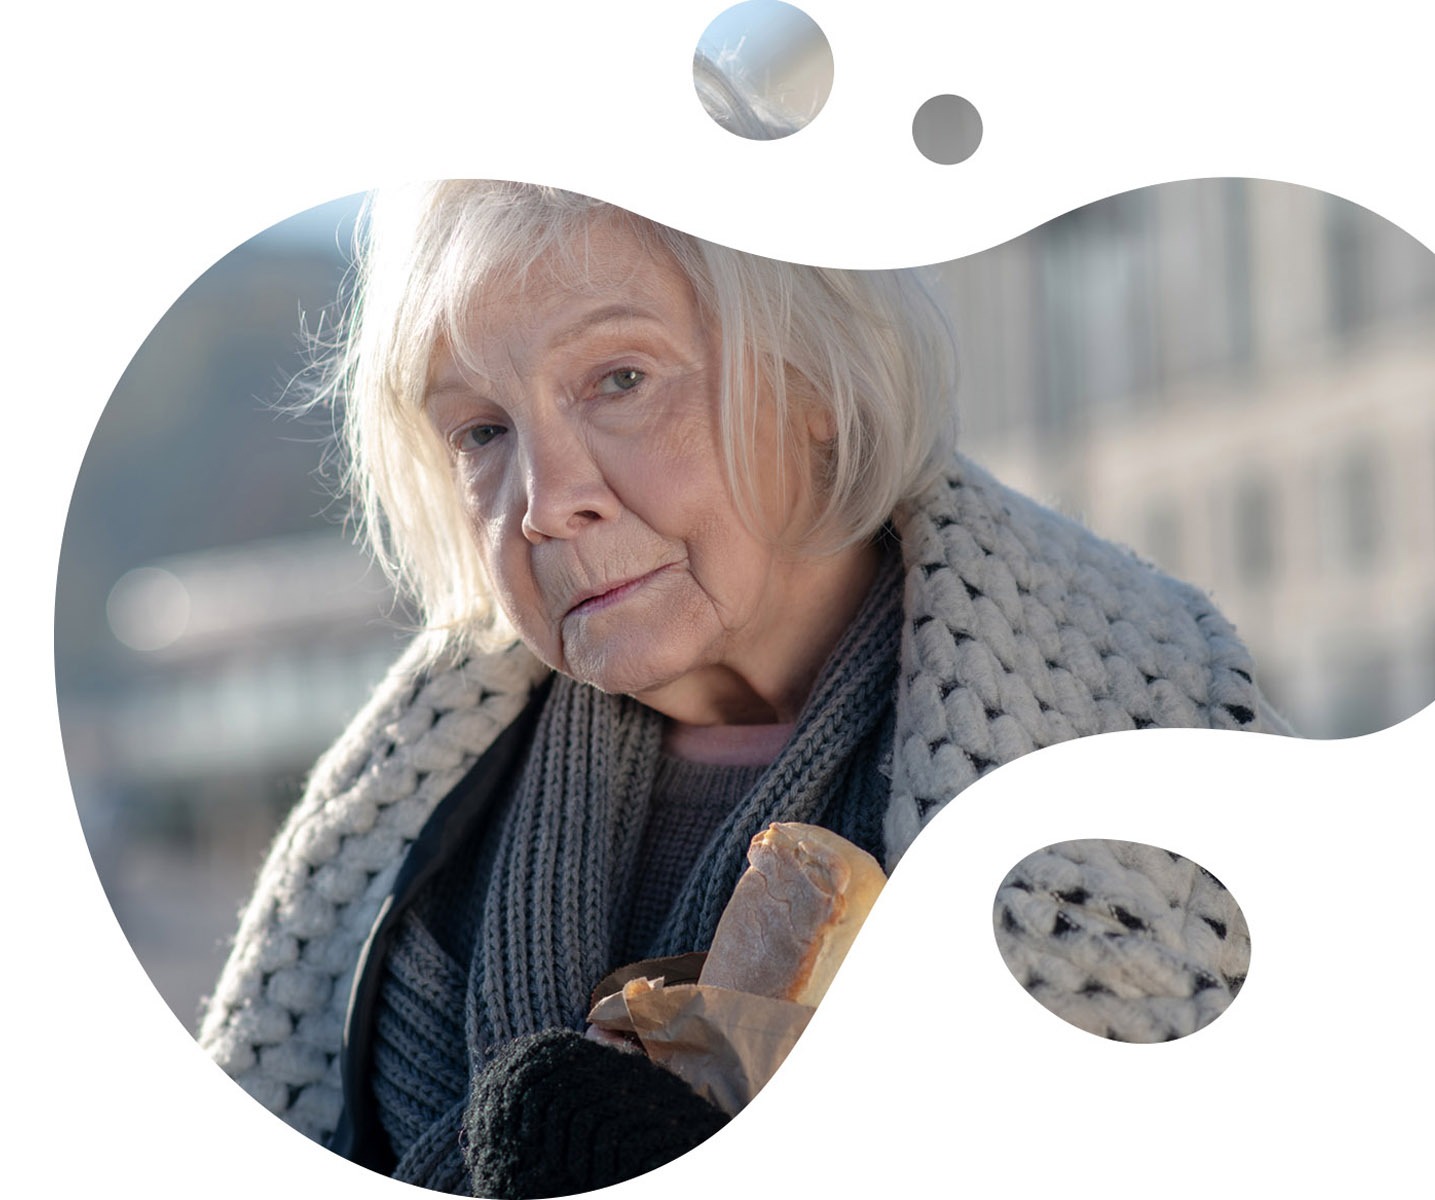 old homeless woman in a bubble